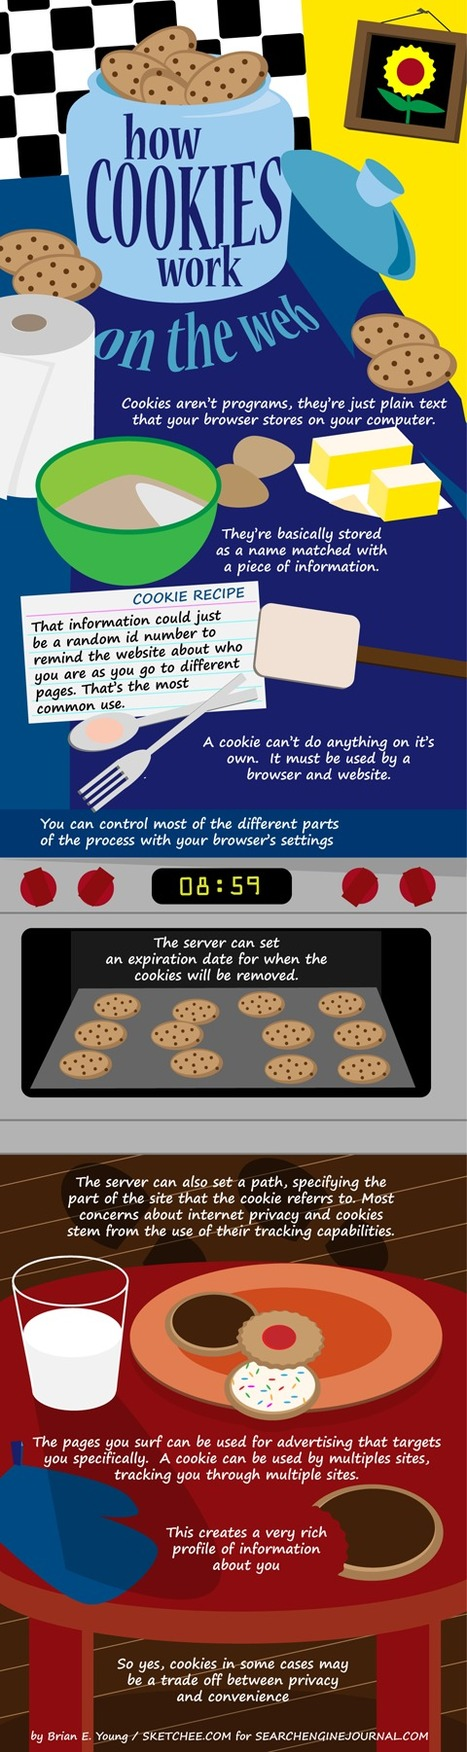 How Cookies Work on the Web [infographic] | RessourcesEn Vrac | Scoop.it